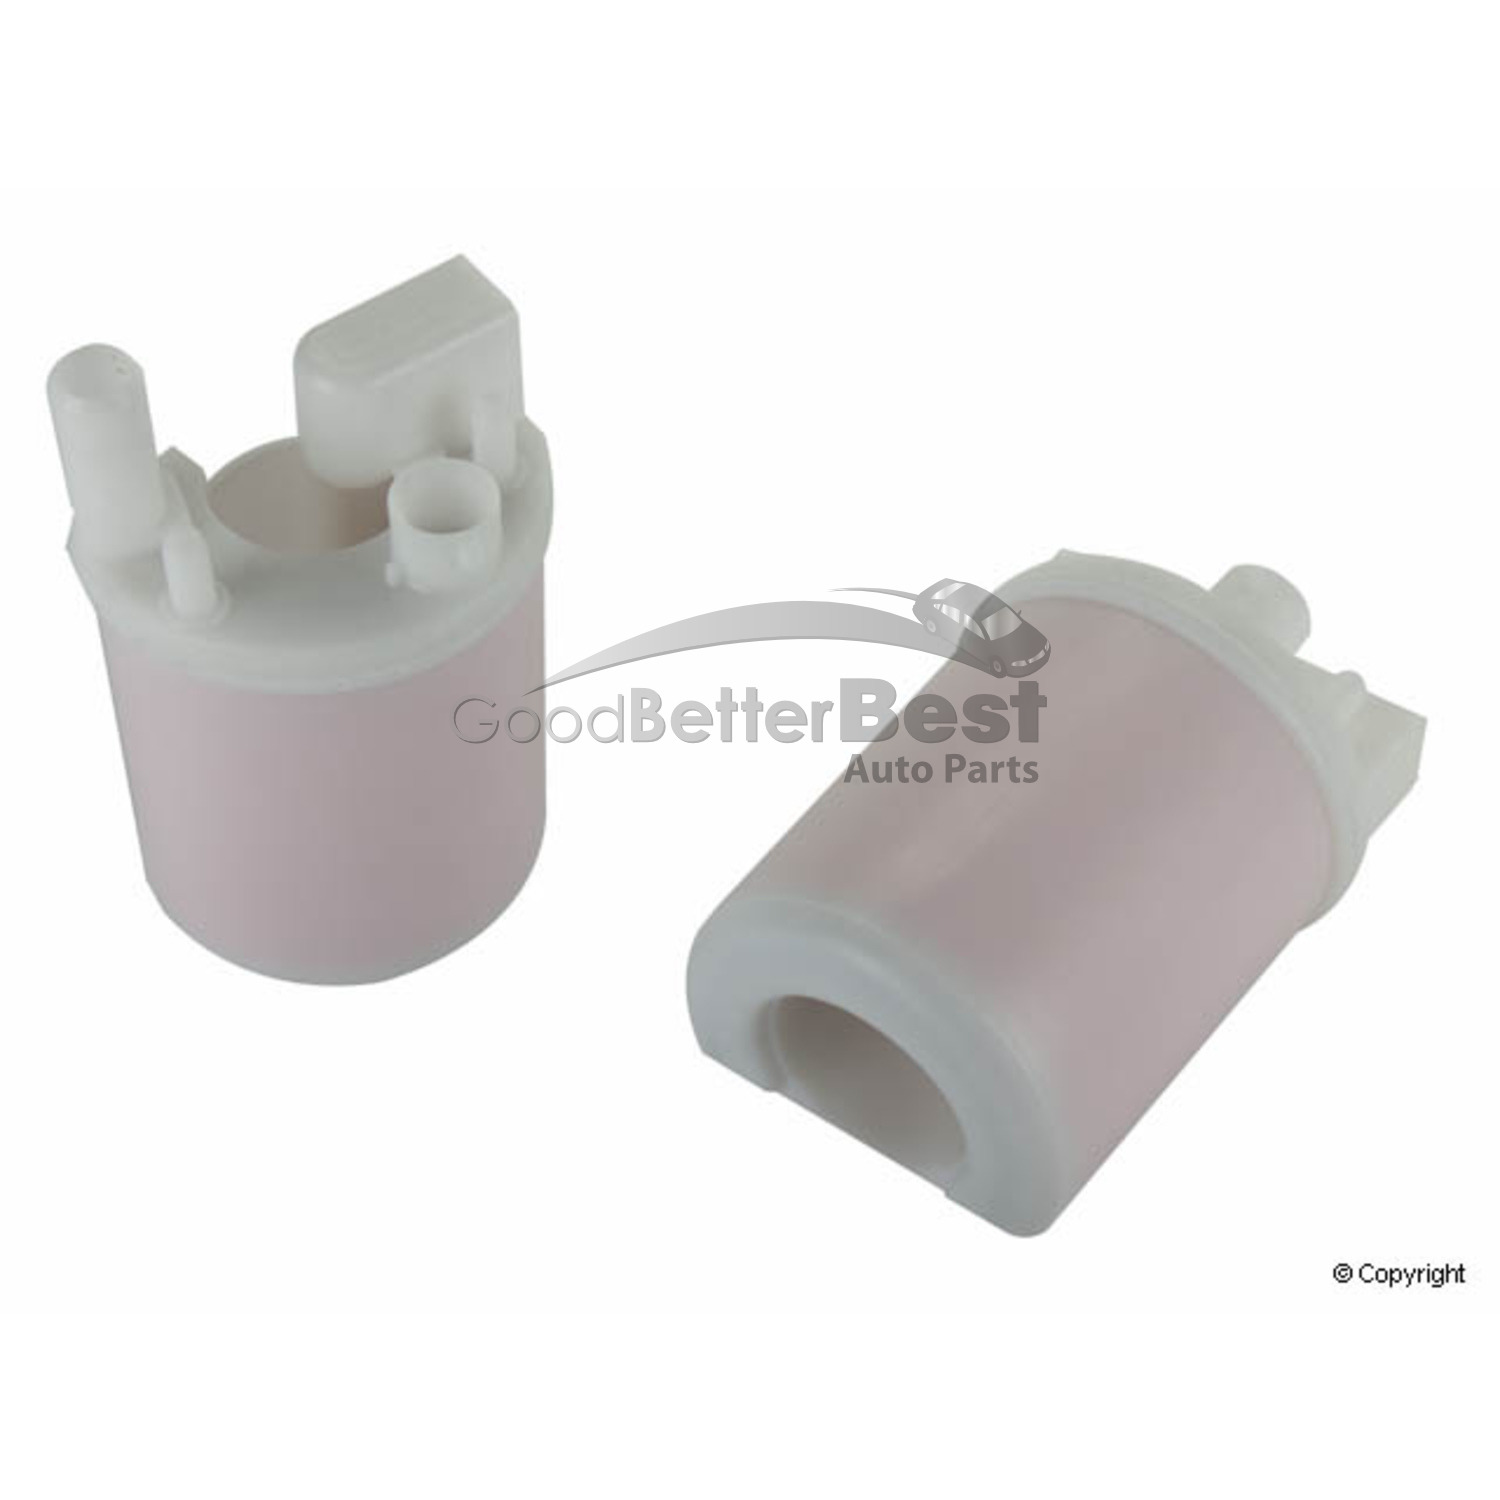 [SCHEMATICS_4NL]  One New Fuel Filter 319110S100 for Kia Spectra Spectra5 | eBay | 2006 Kia Spectra5 Fuel Filter |  | eBay